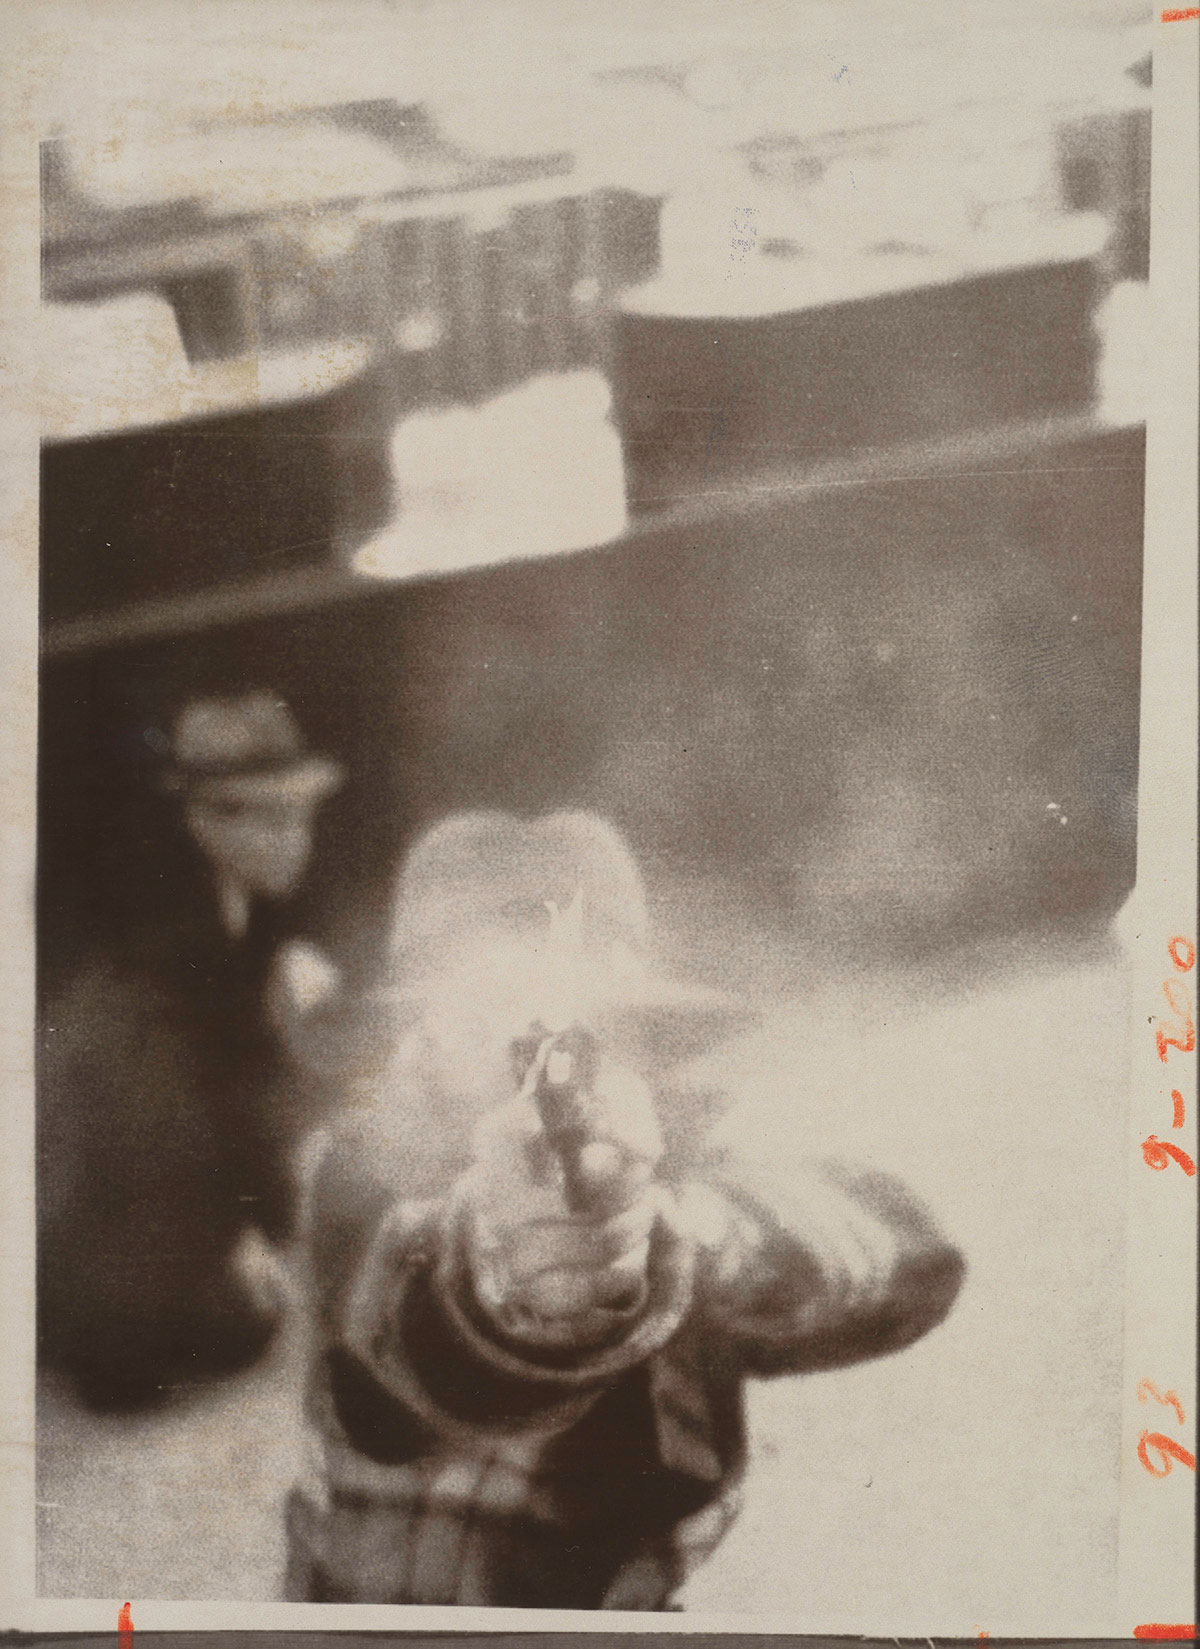 A bank robber aiming at a security camera, Cleveland, March 8, 1975